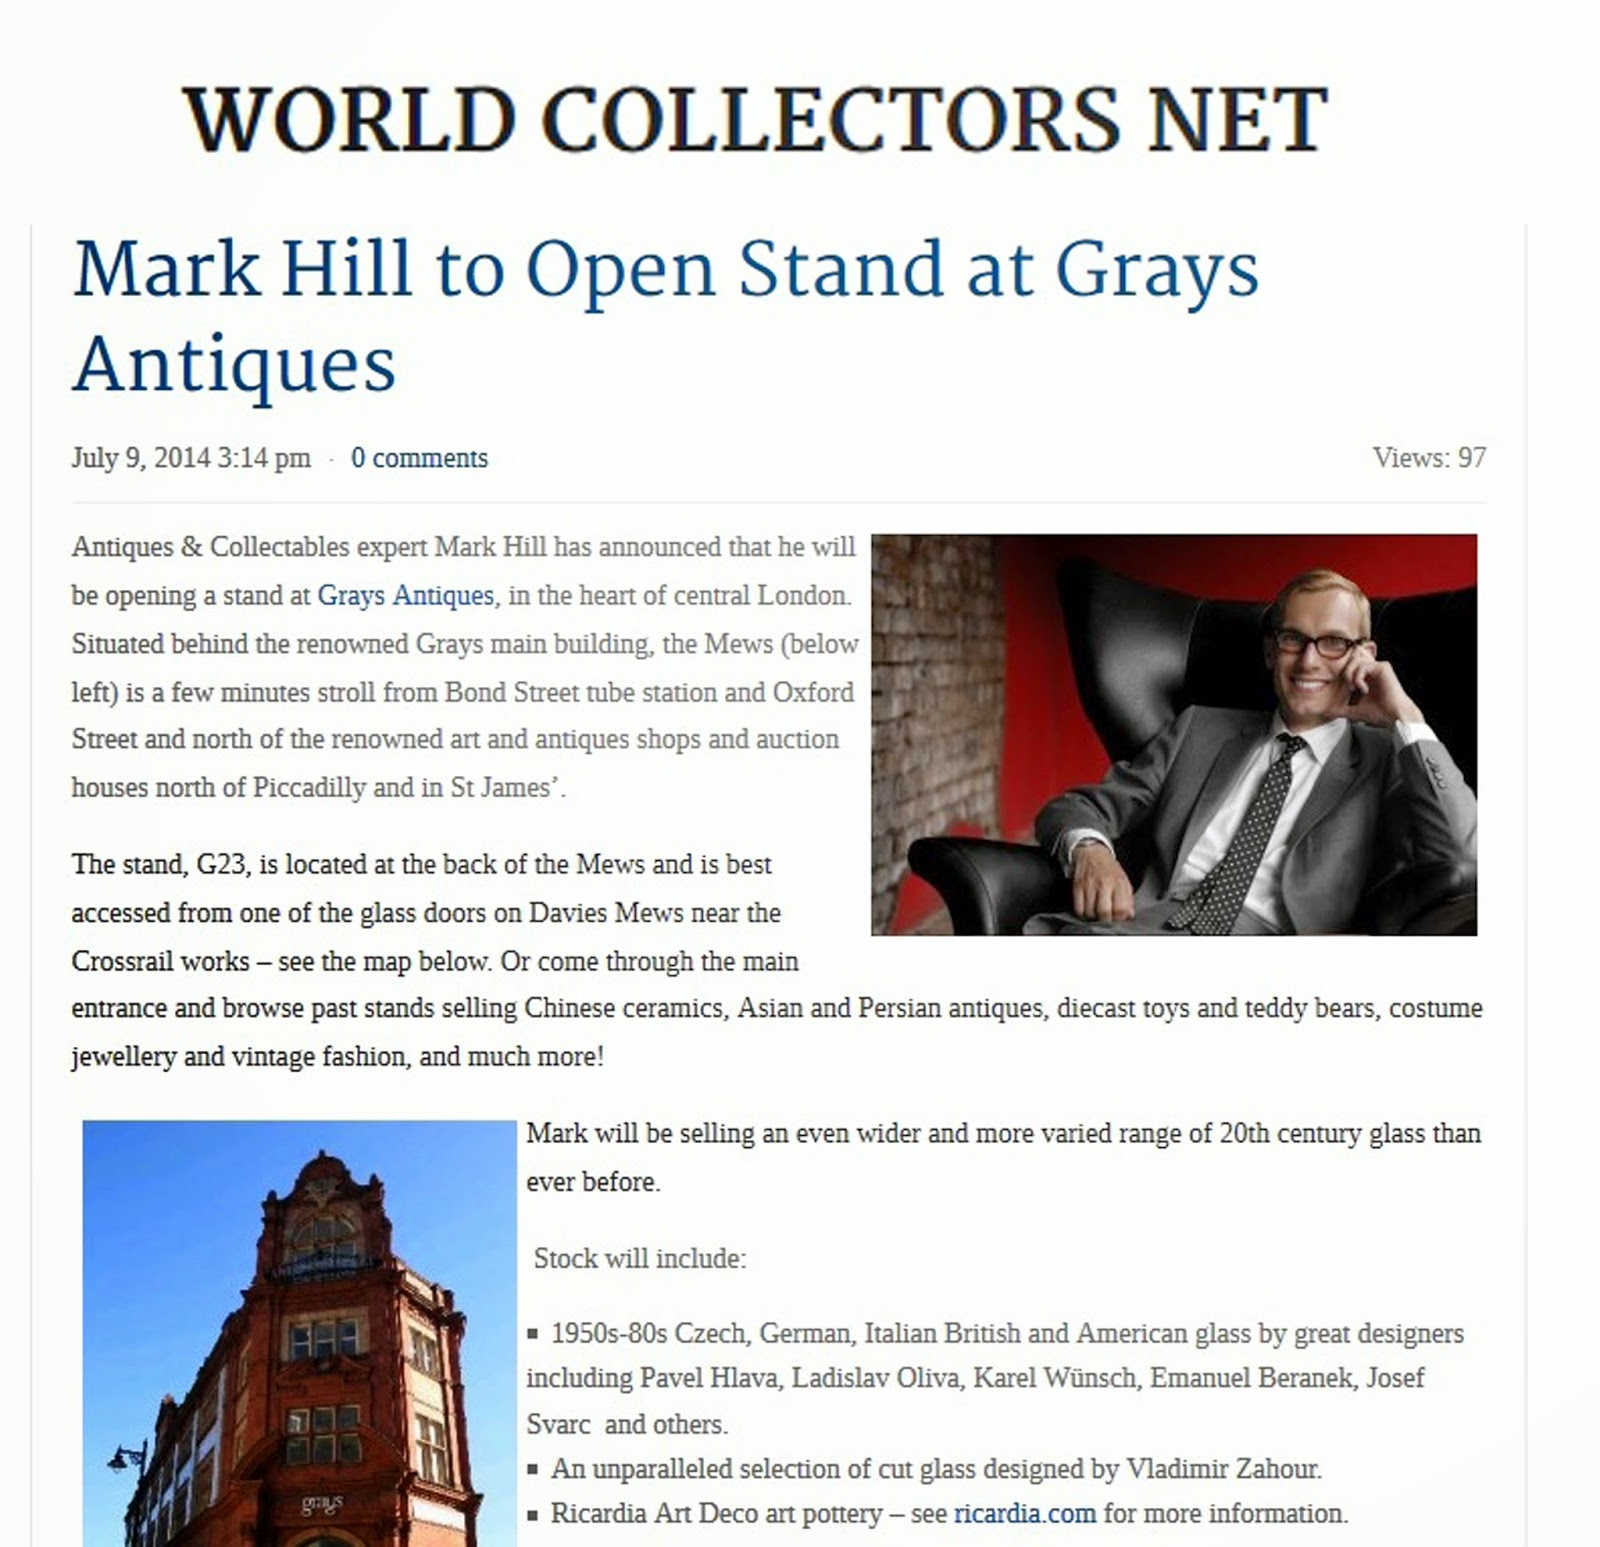 http://www.worldcollectorsnet.com/antiques-news/mark-hill-open-stand-grays-antiques/